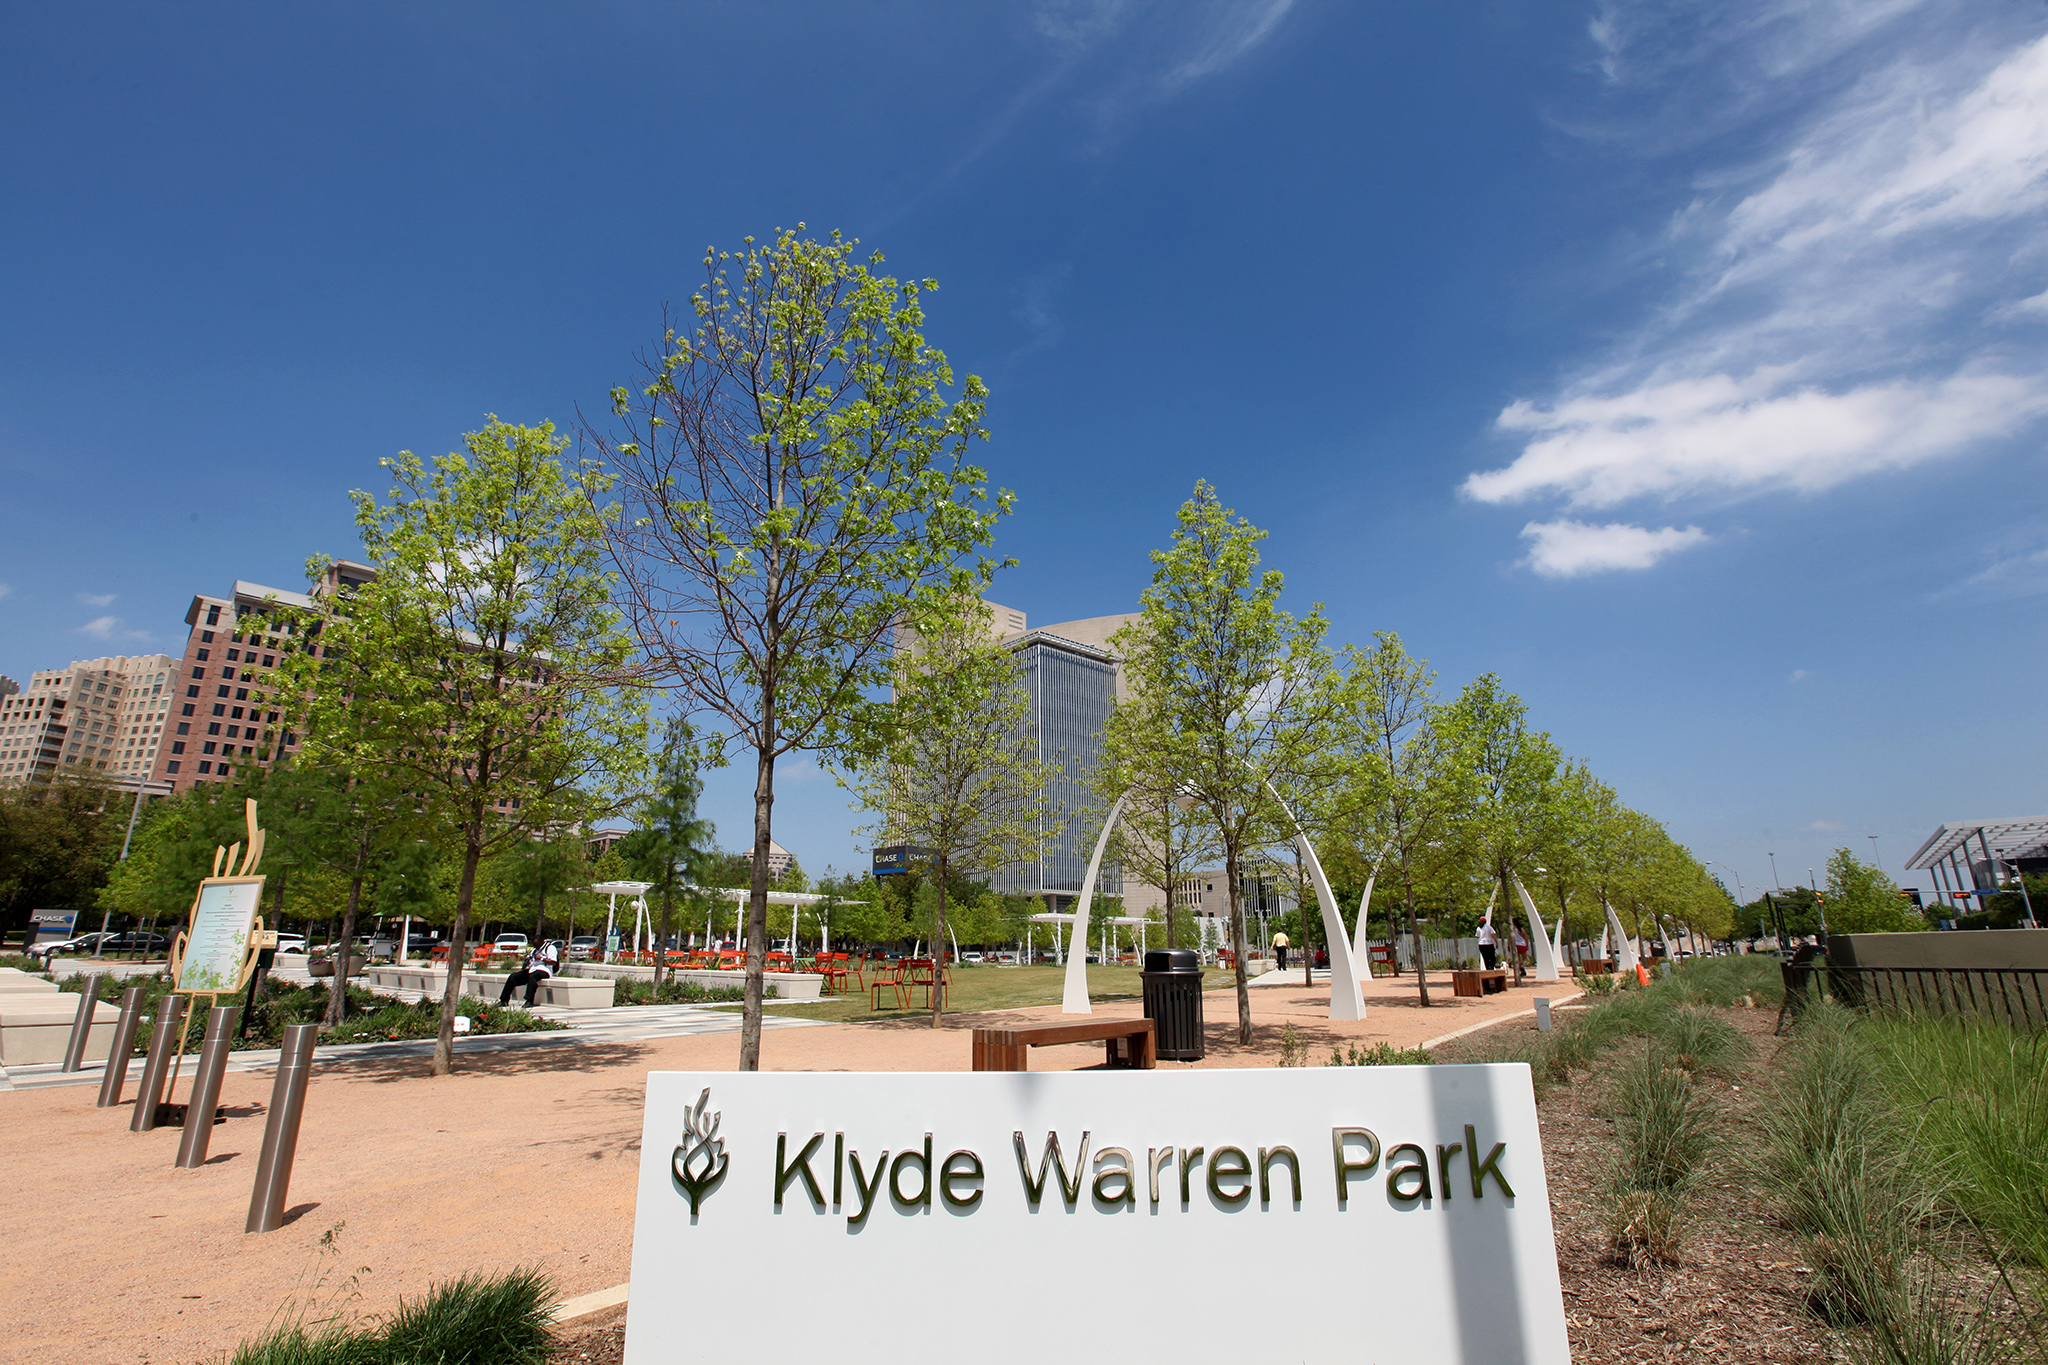 Park yourself in Klyde Warren for an afternoon